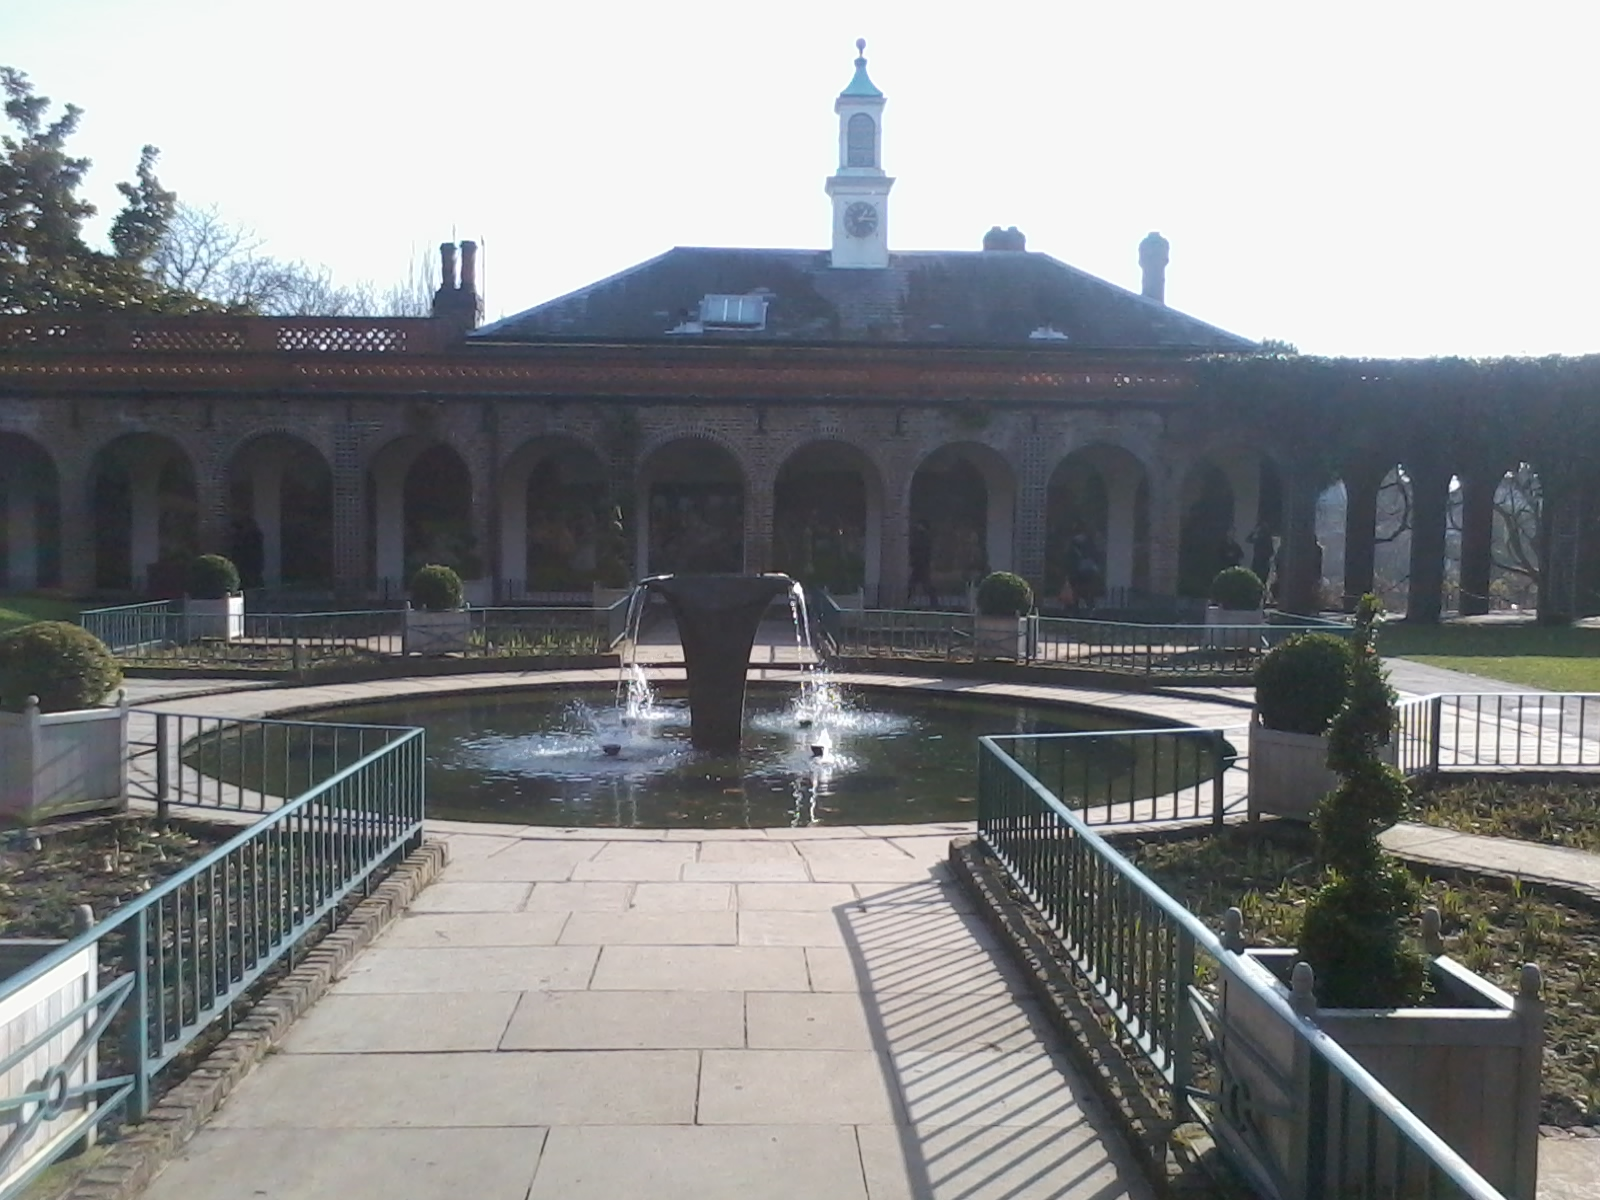 The fountain.